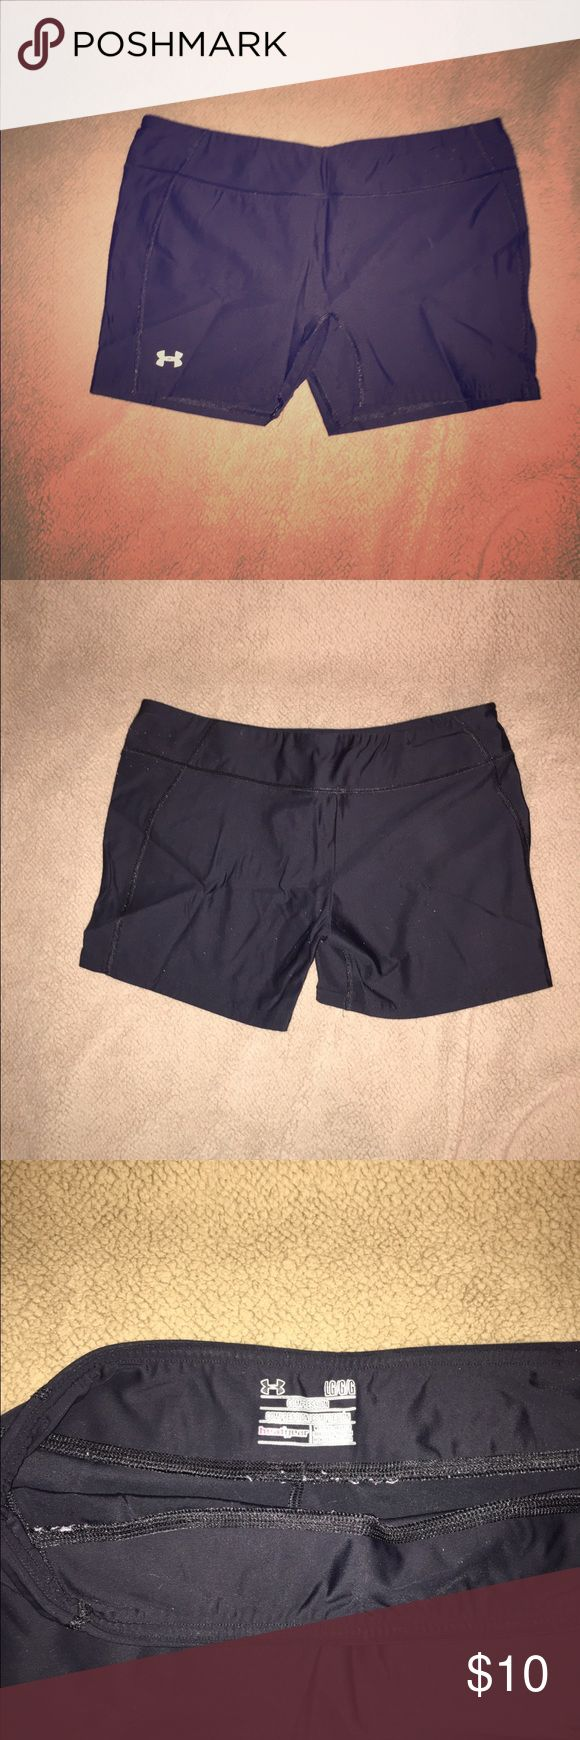 Under armour spandex shorts Black under armour spandex shorts Under Armour Pants Track Pants & Joggers